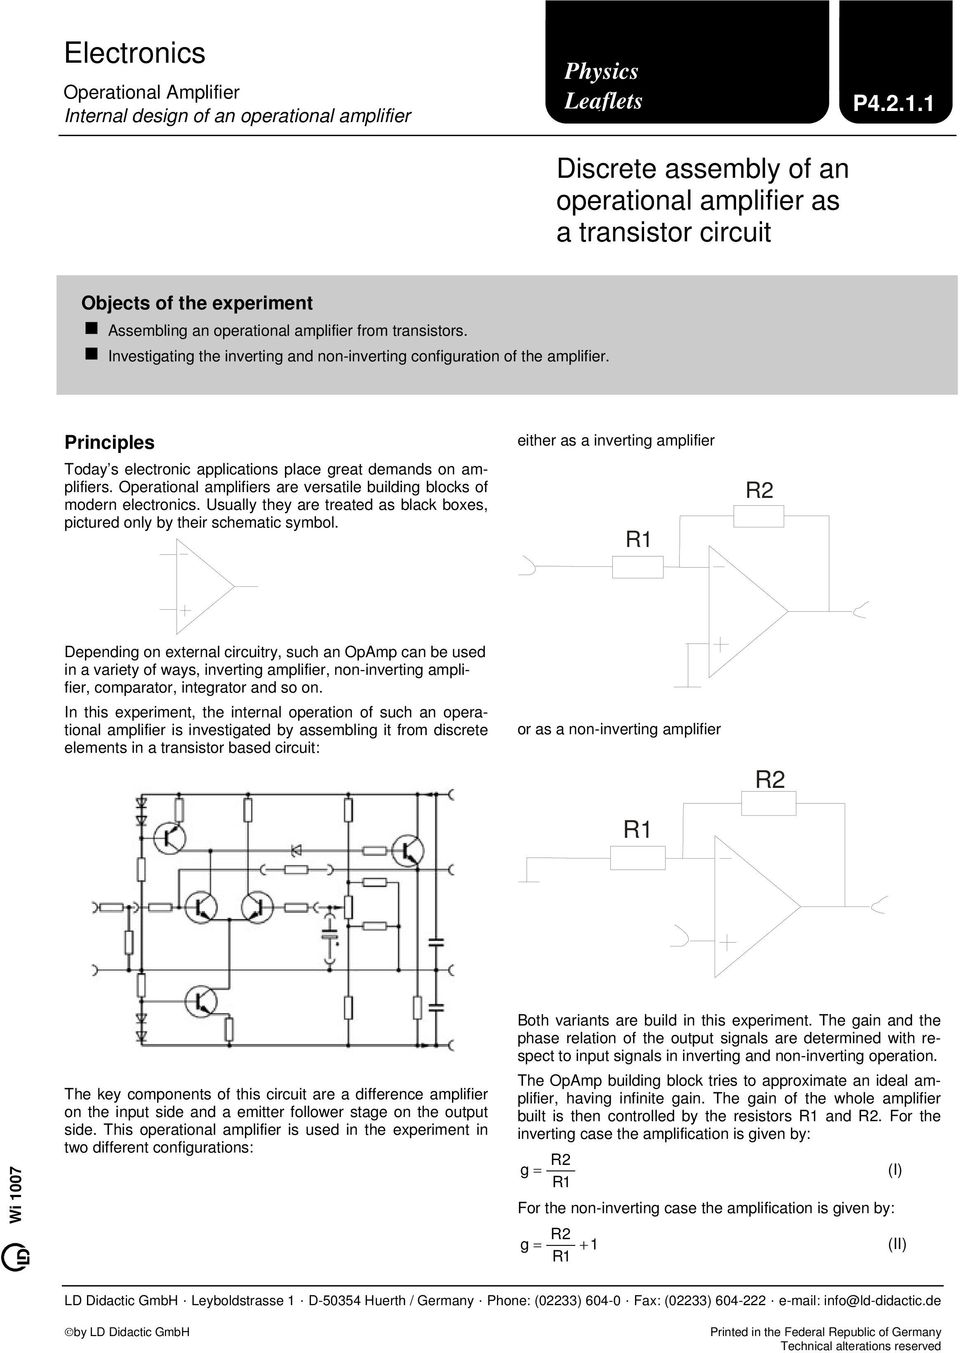 Electronics  Discrete assembly of an operational amplifier